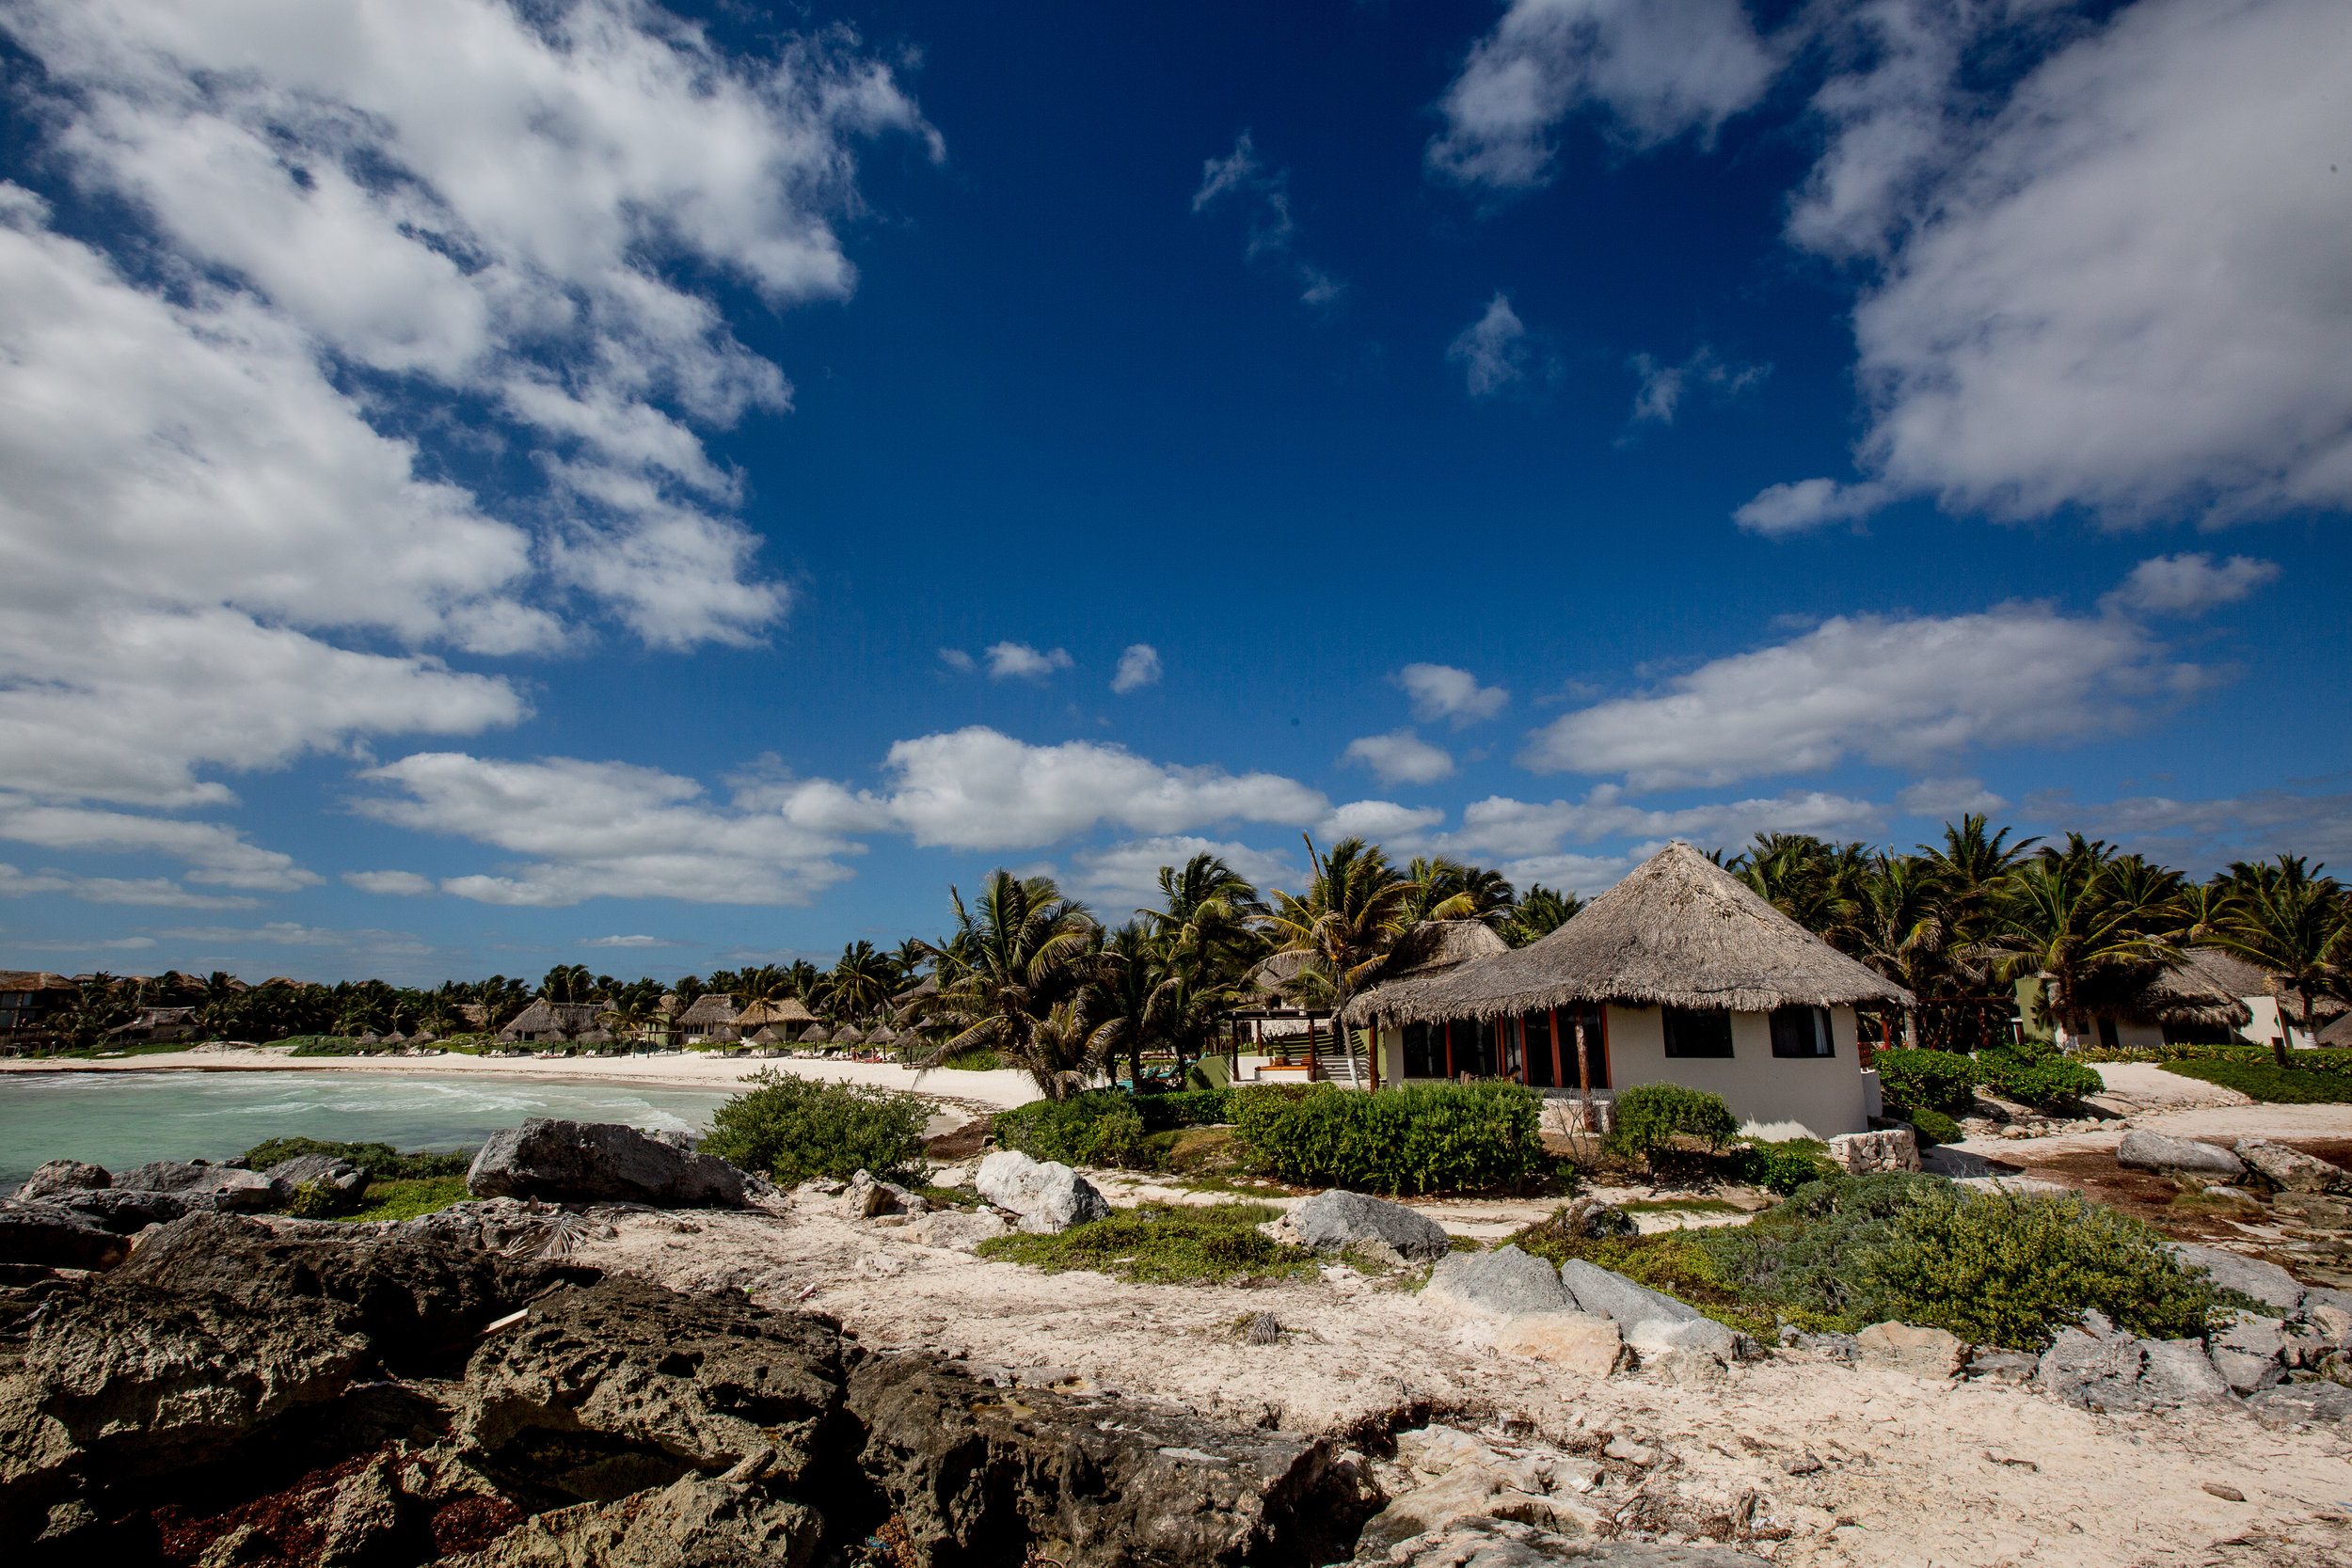 Maya_Tulum_Spa_Resort_woodandsmith.com-1 (1).jpg